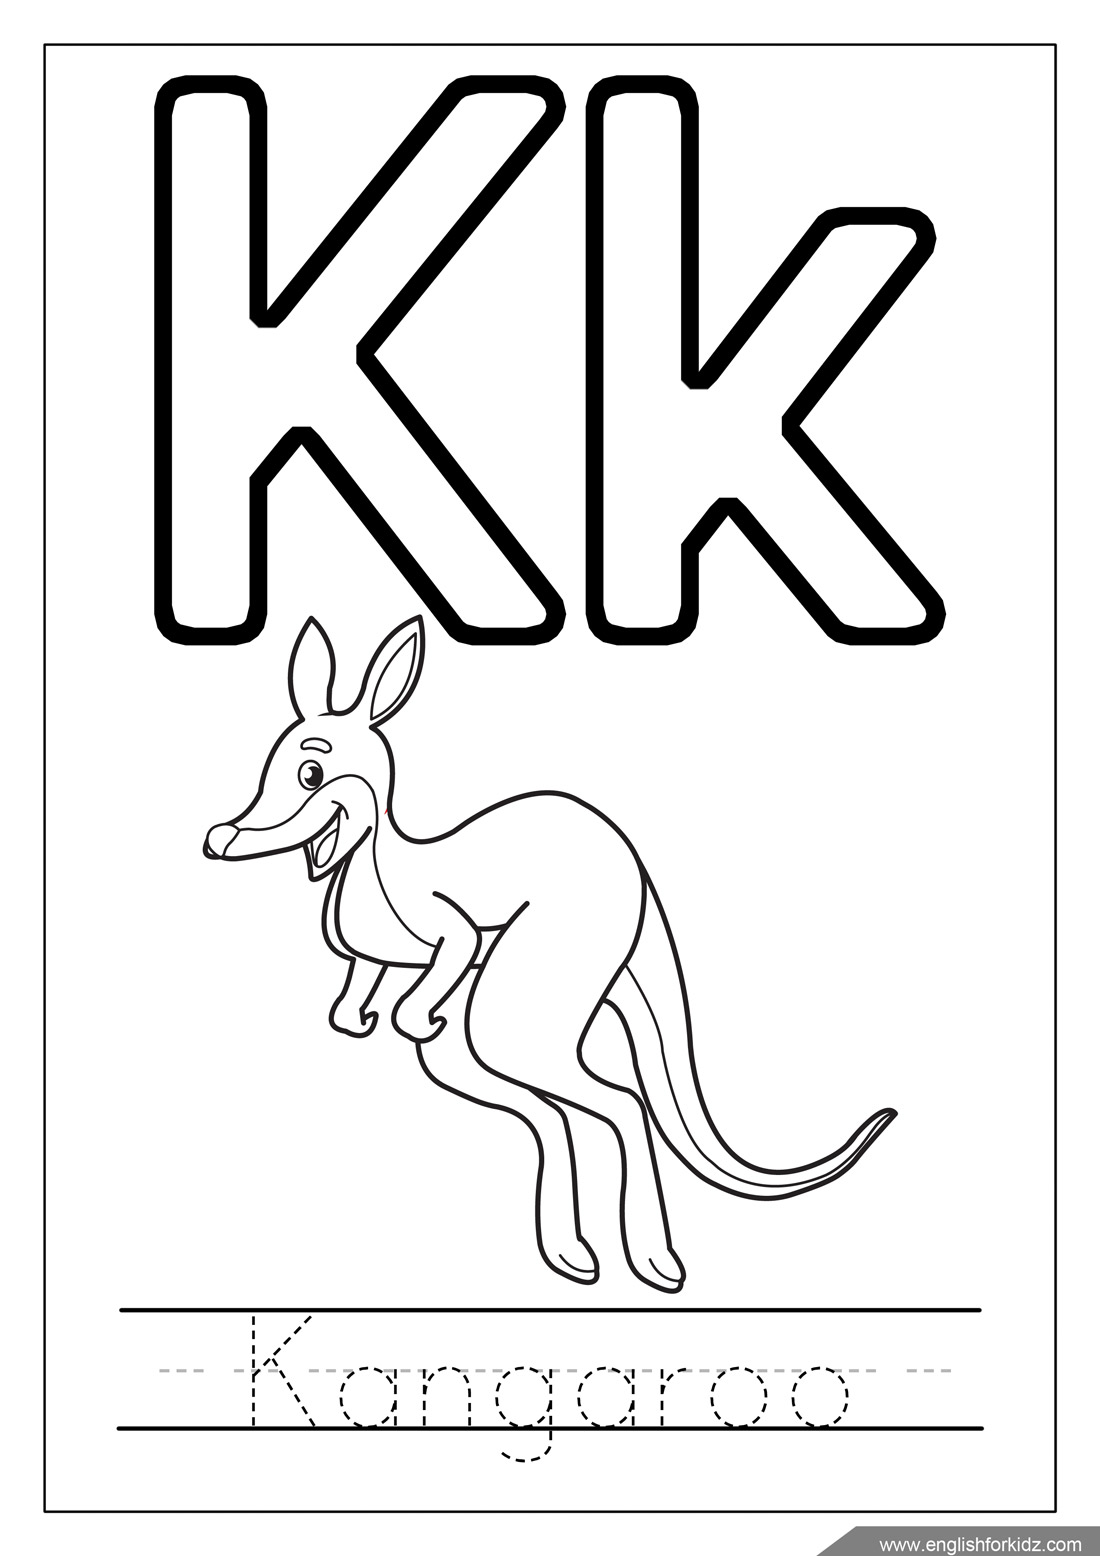 k coloring picture letter k is for kite coloring page free printable k picture coloring